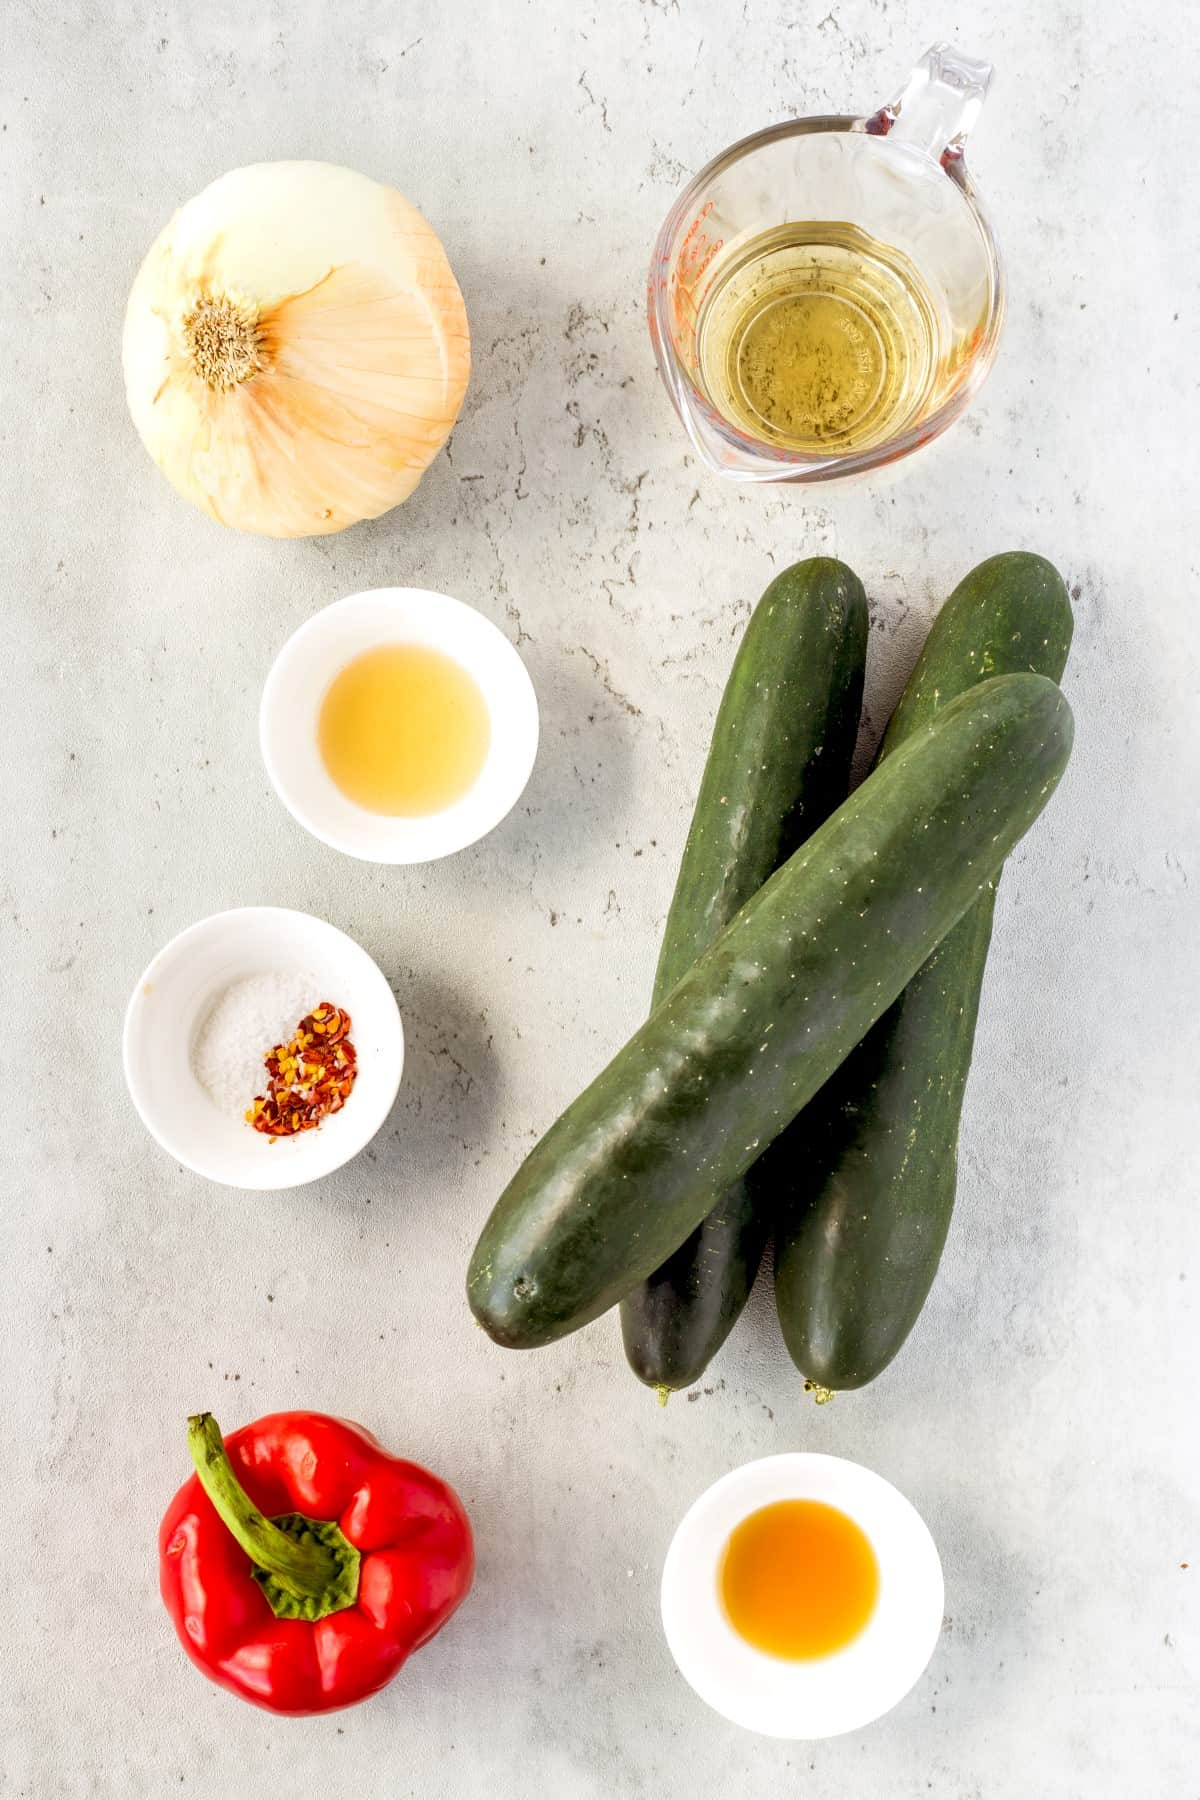 Ingredients for Asian Cucumber Salad